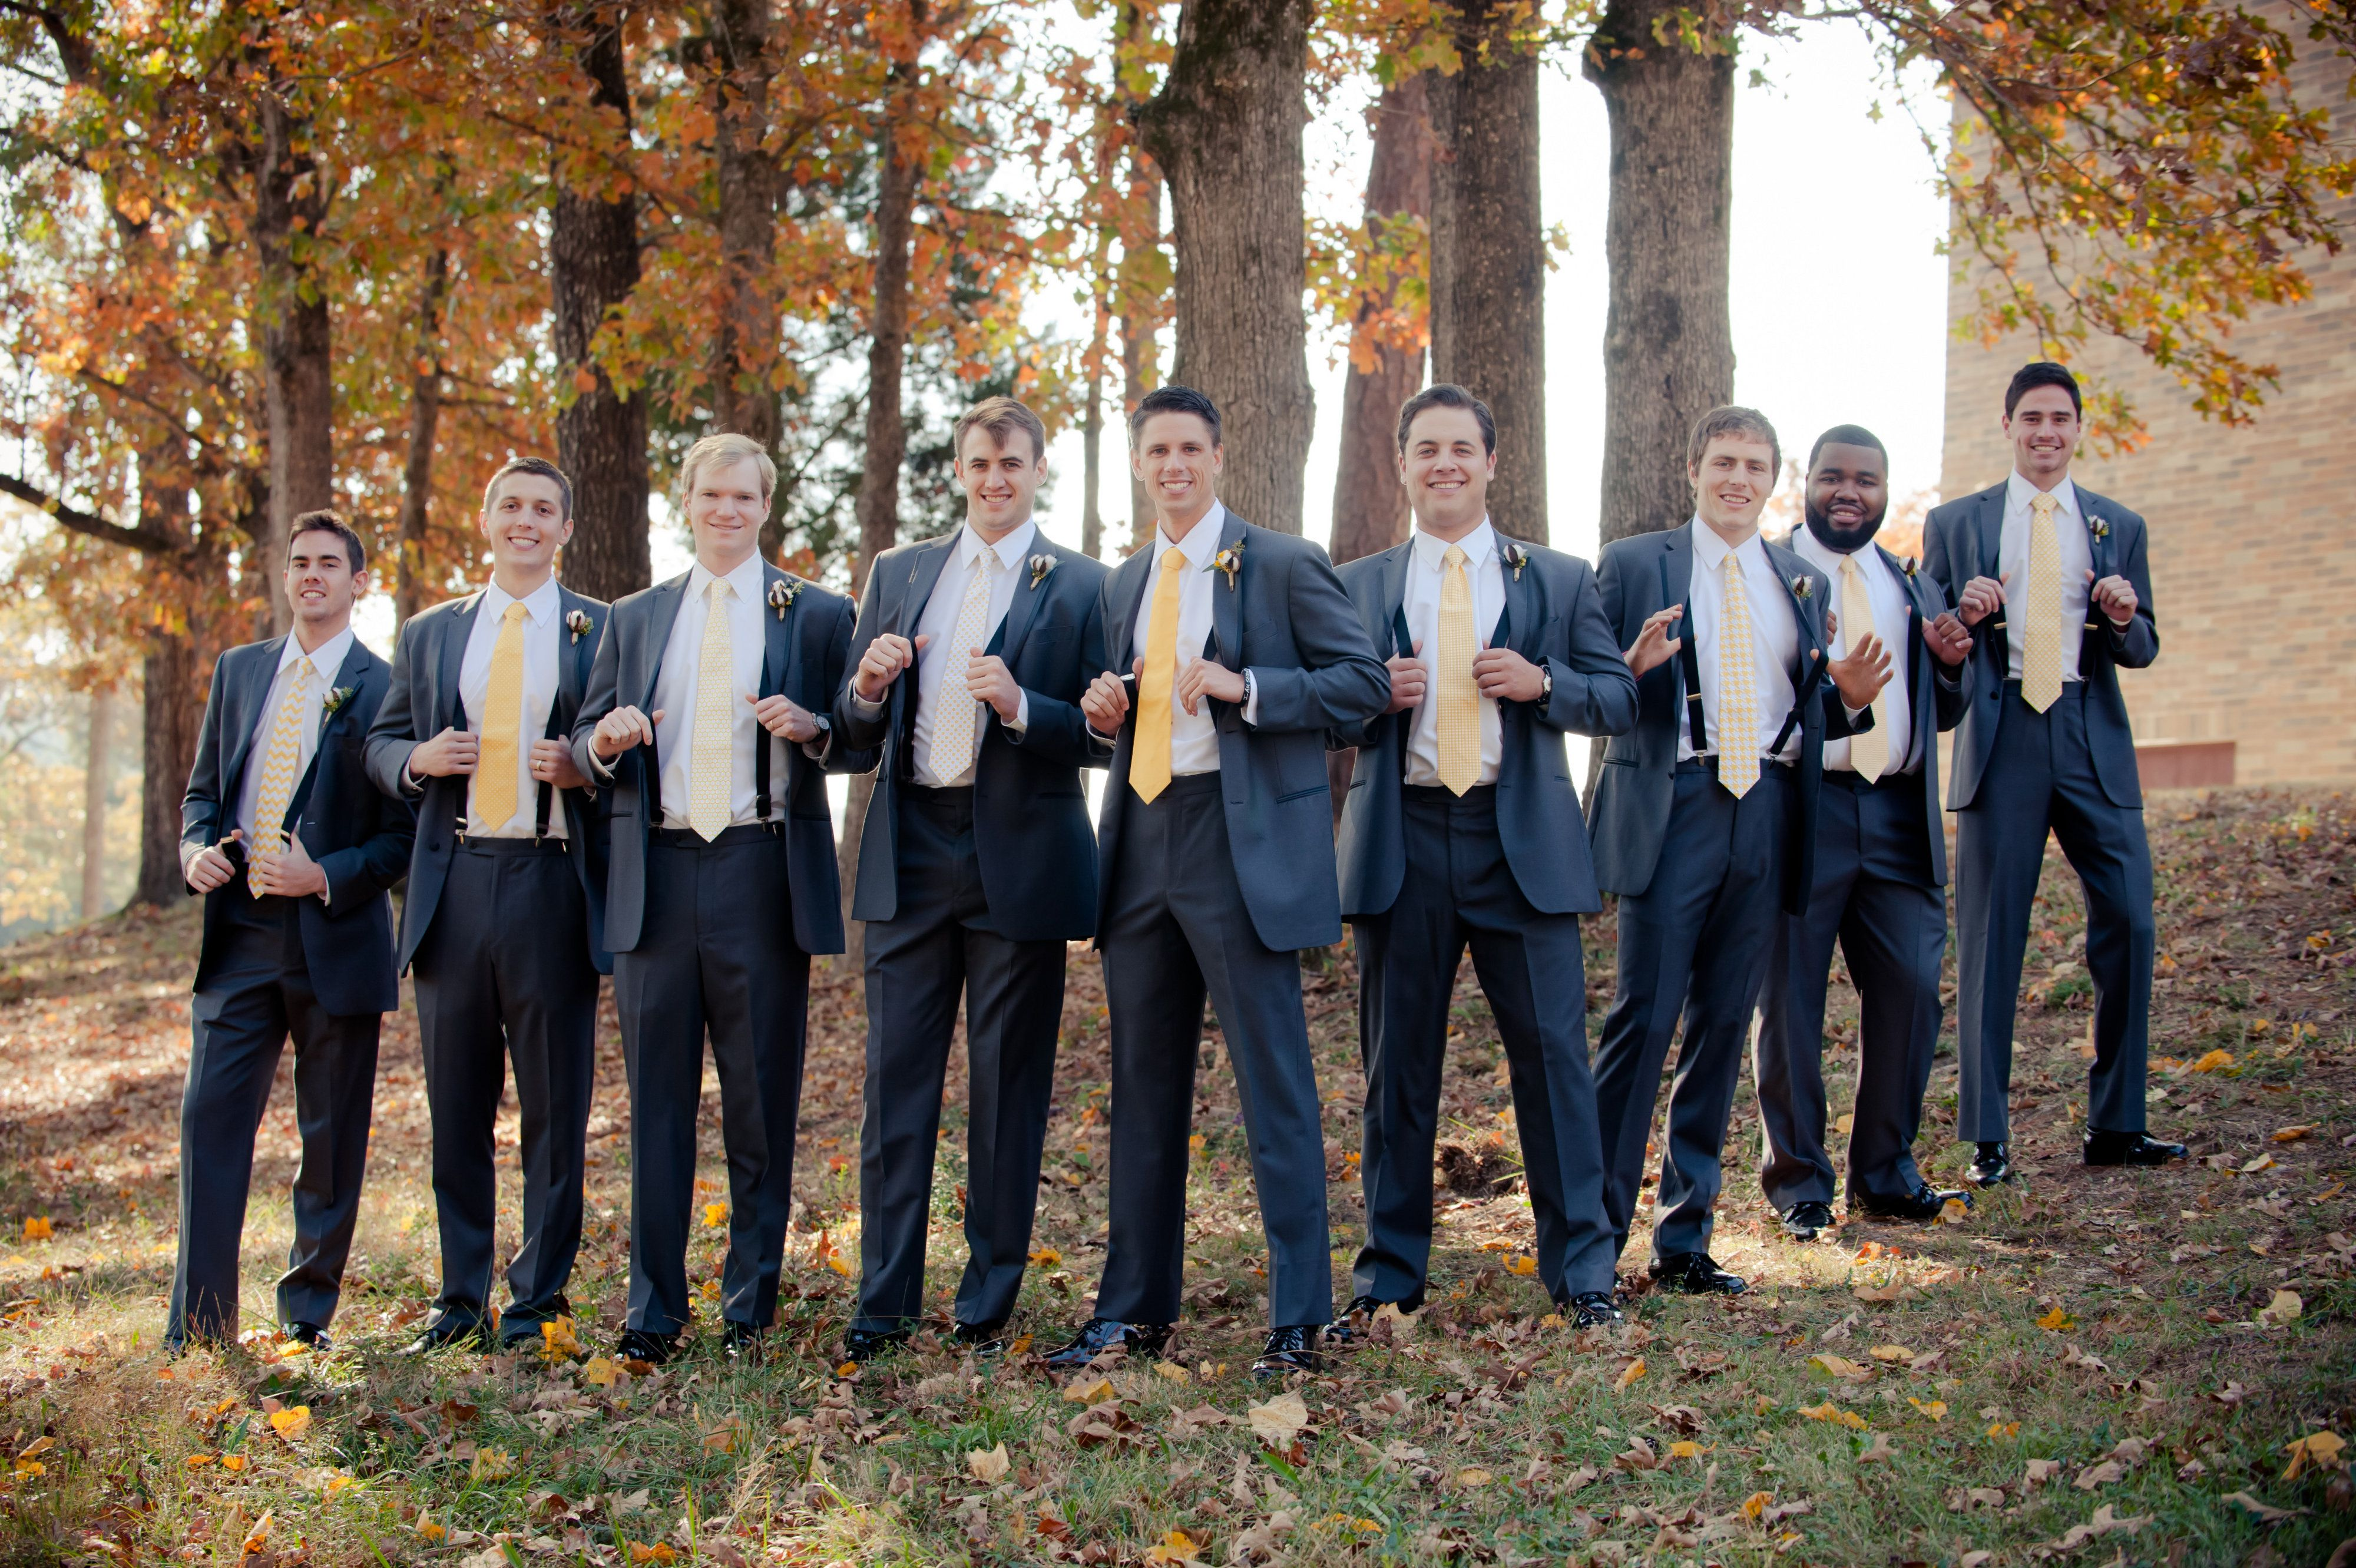 Allison Lewis Photography Decor To Adore Best Dressed Groomsmen